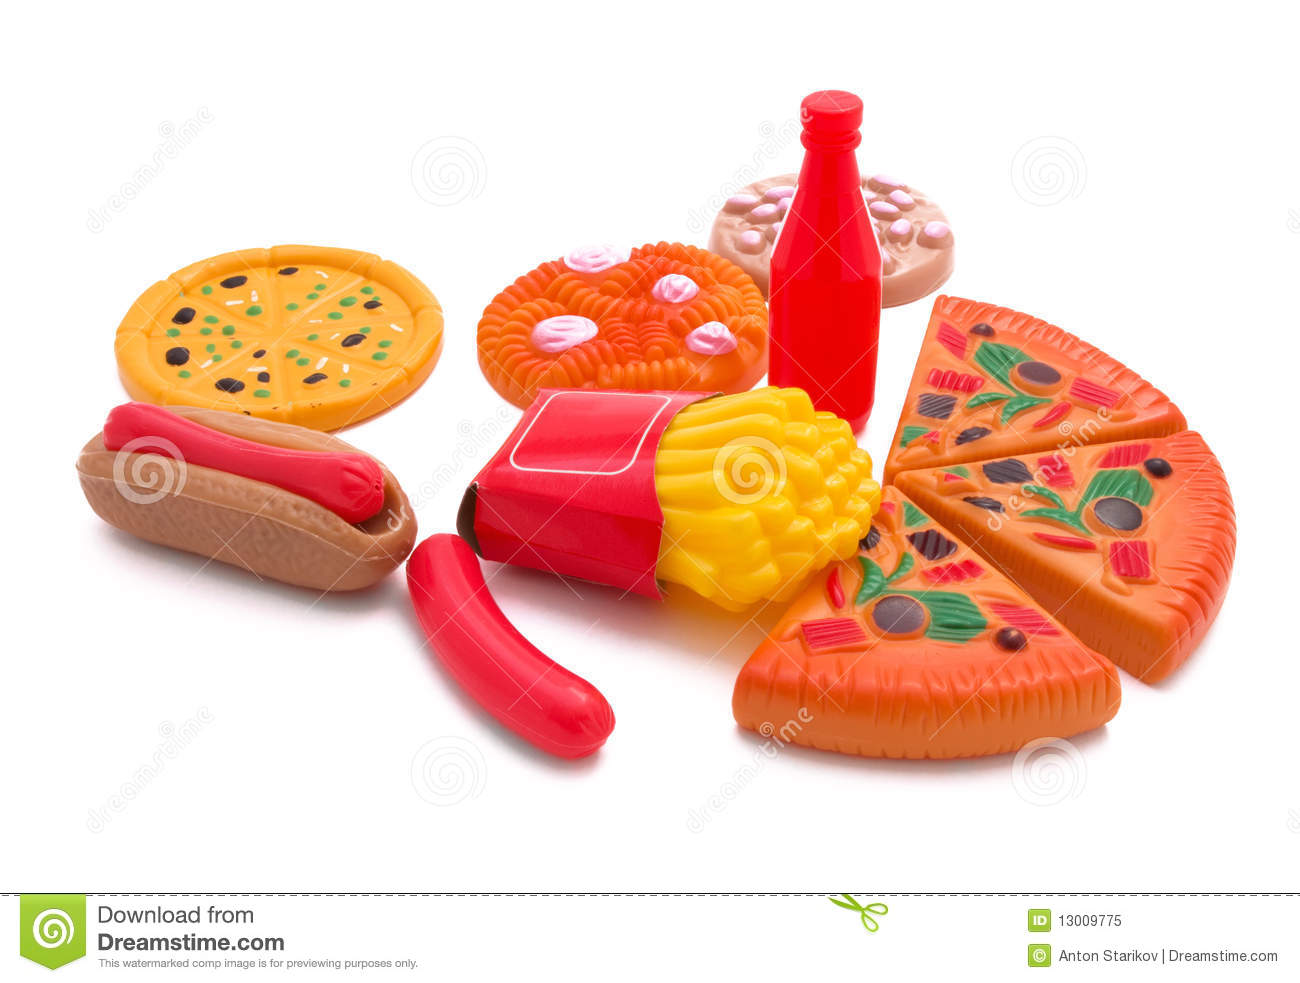 Fast Food Toys : Fast food toy stock image of play pizza sandwich